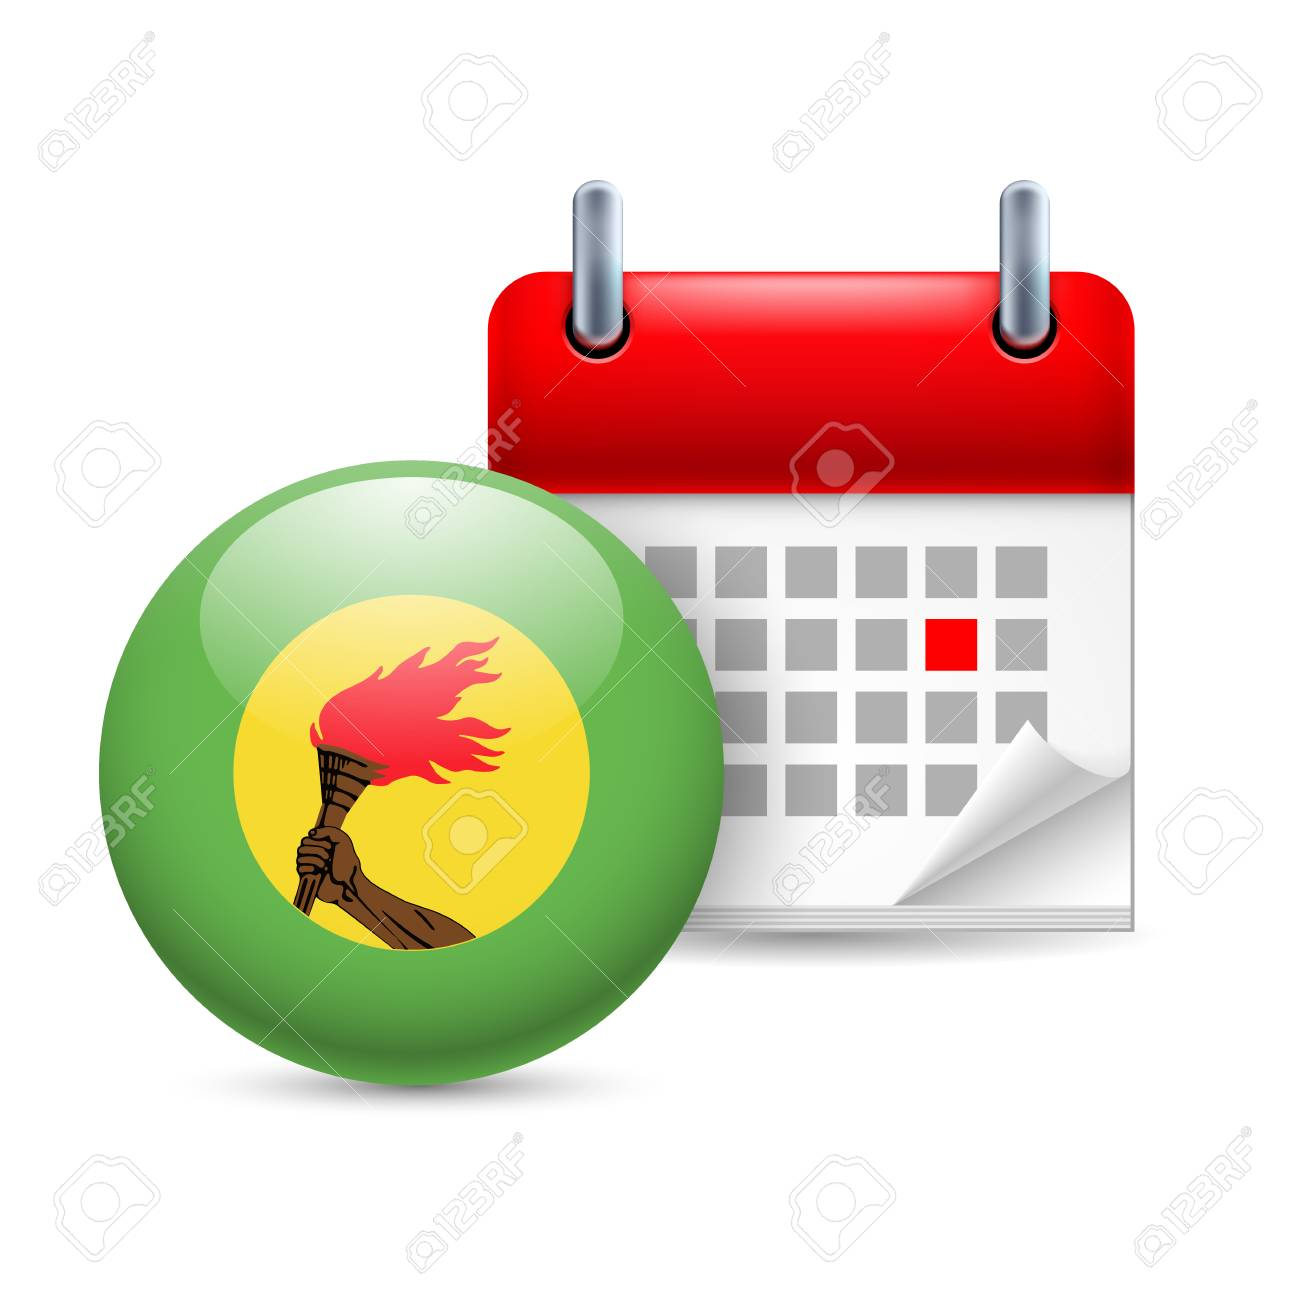 Calendar and round flag icon. National holiday in Zaire Stock Vector - 30220380